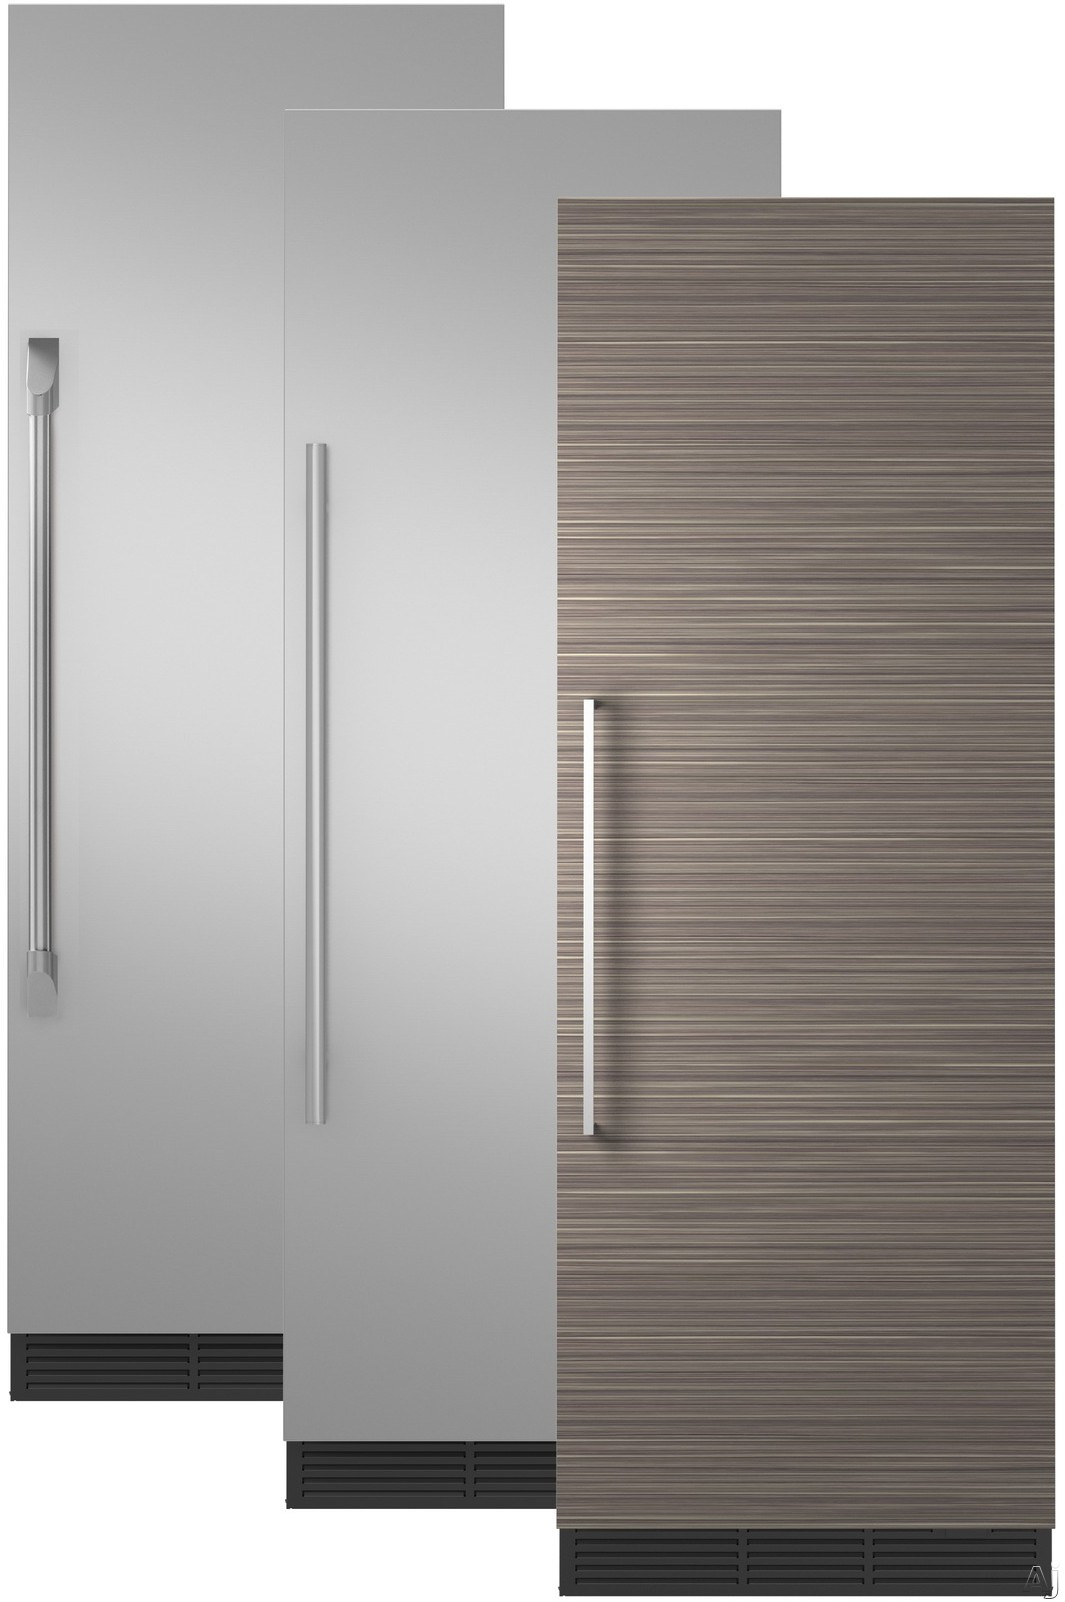 Image of Monogram ZIR300NPKII 30 Inch Panel Ready Refrigerator Column with Wi-Fi Connectivity, Autofill Pitcher, Spill-Resistant Glass Shelving, Adjustable Door Bins, Humidity-Controlled Vegetable Drawer, Temperature-Controlled Drawer, Sabbath Mode and 17.3 cu. ft